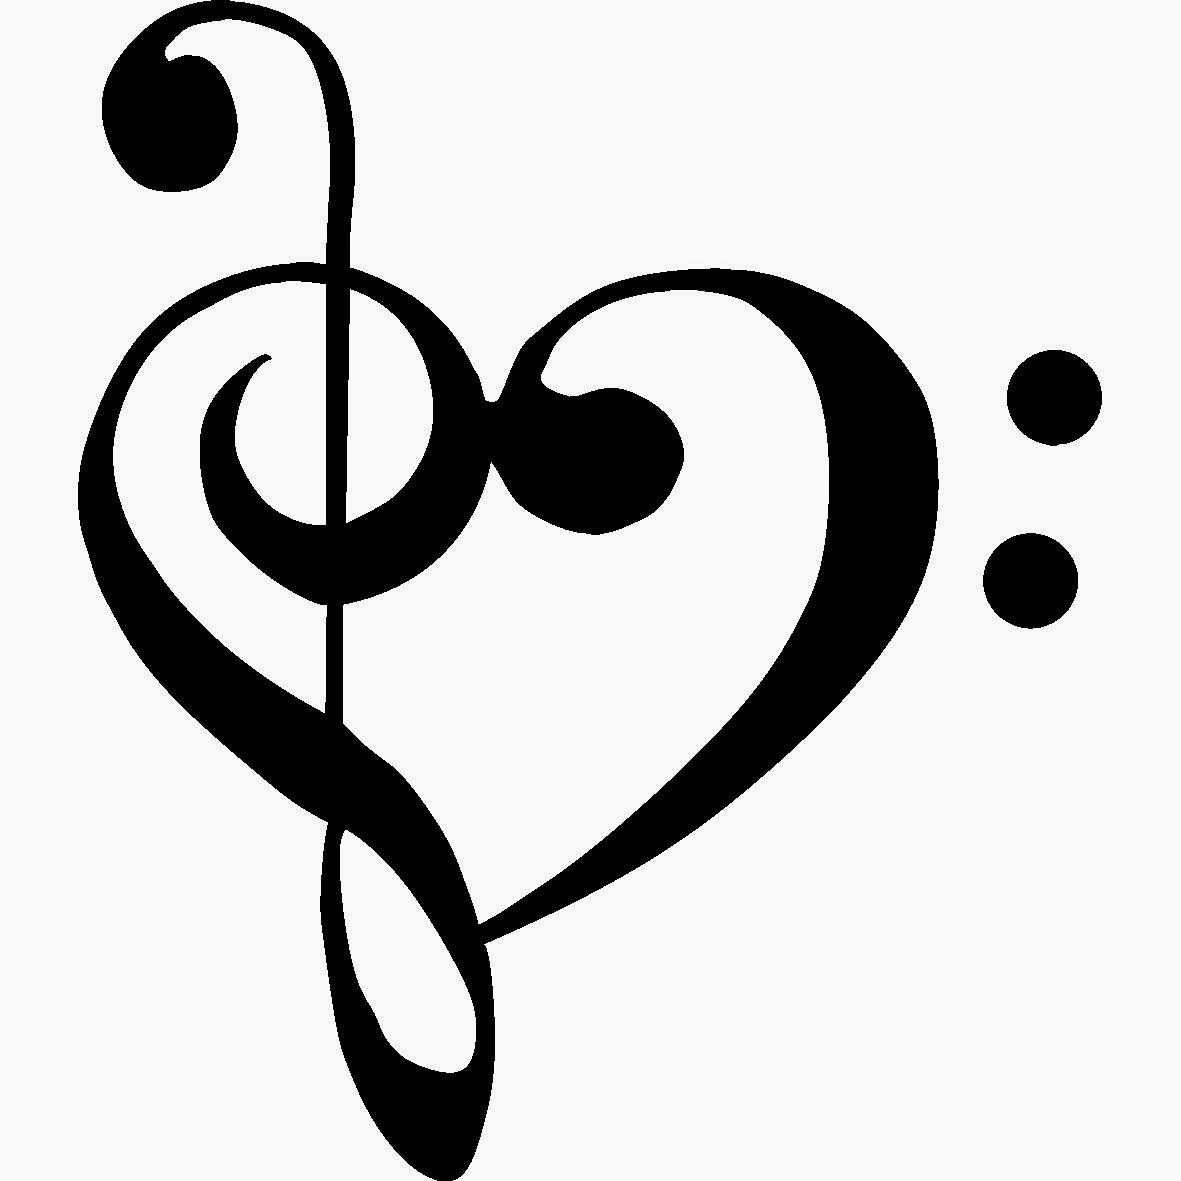 Musical Note Images Free Download Best Musical Note Images On